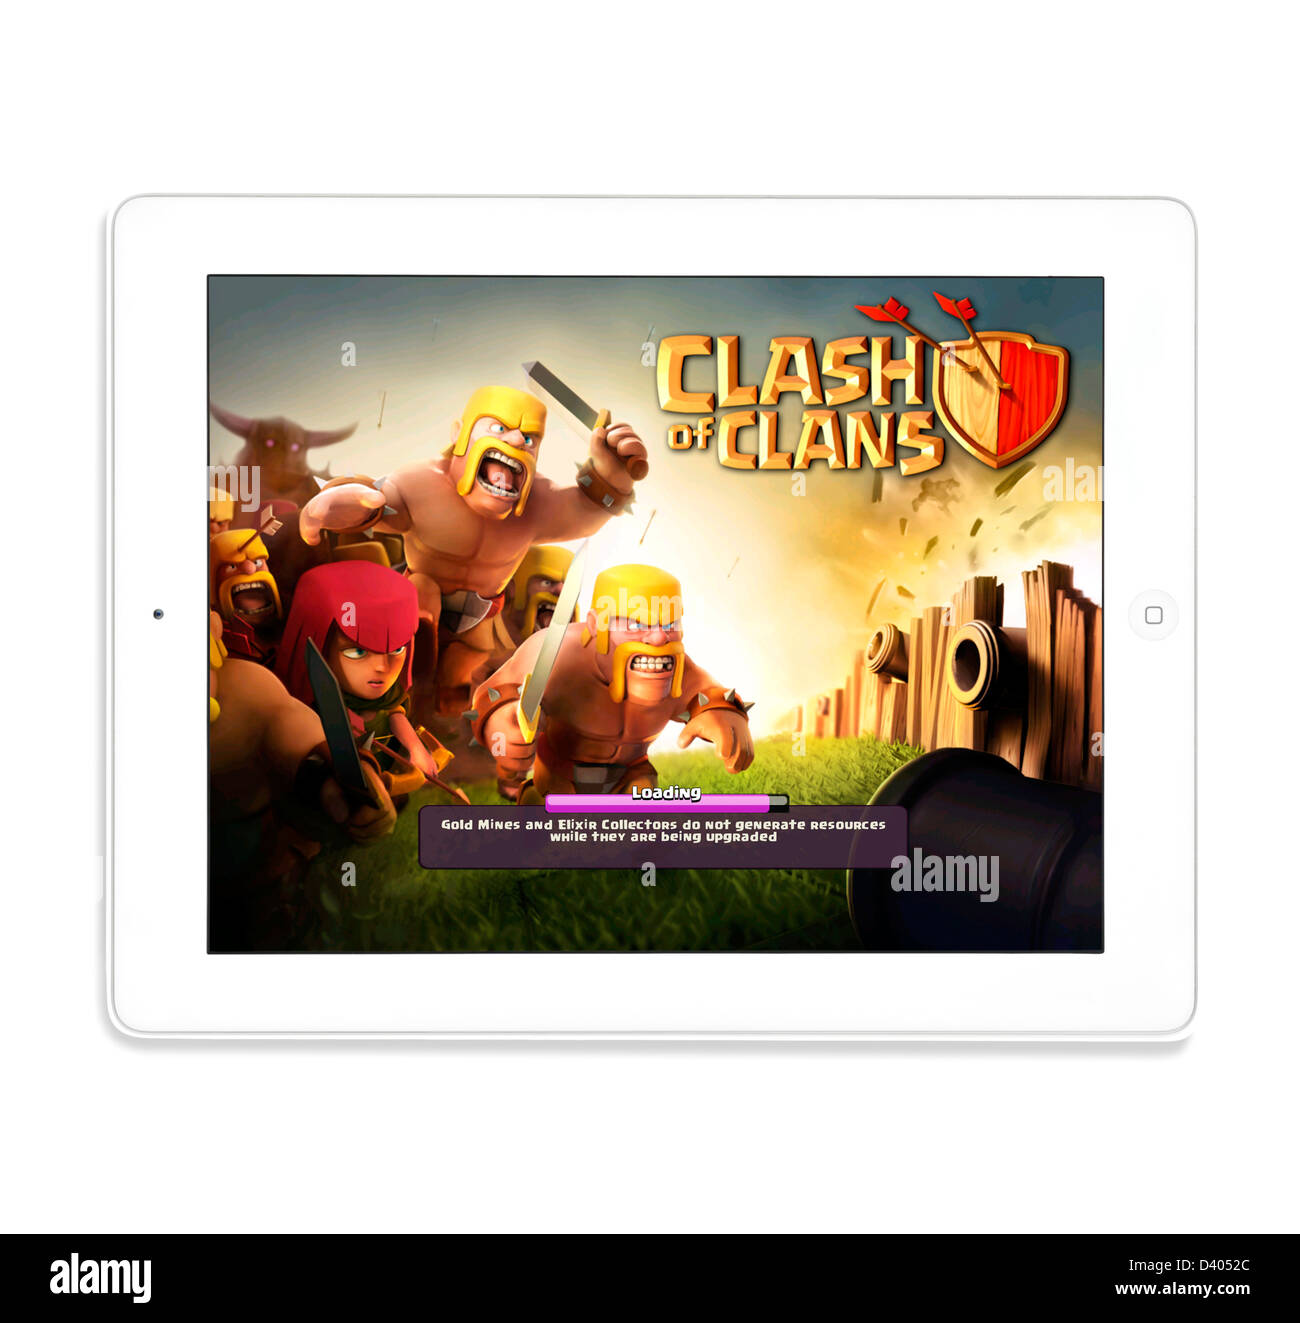 Playing the popular free game Clash of Clans on a 4th generation iPad - Stock Image